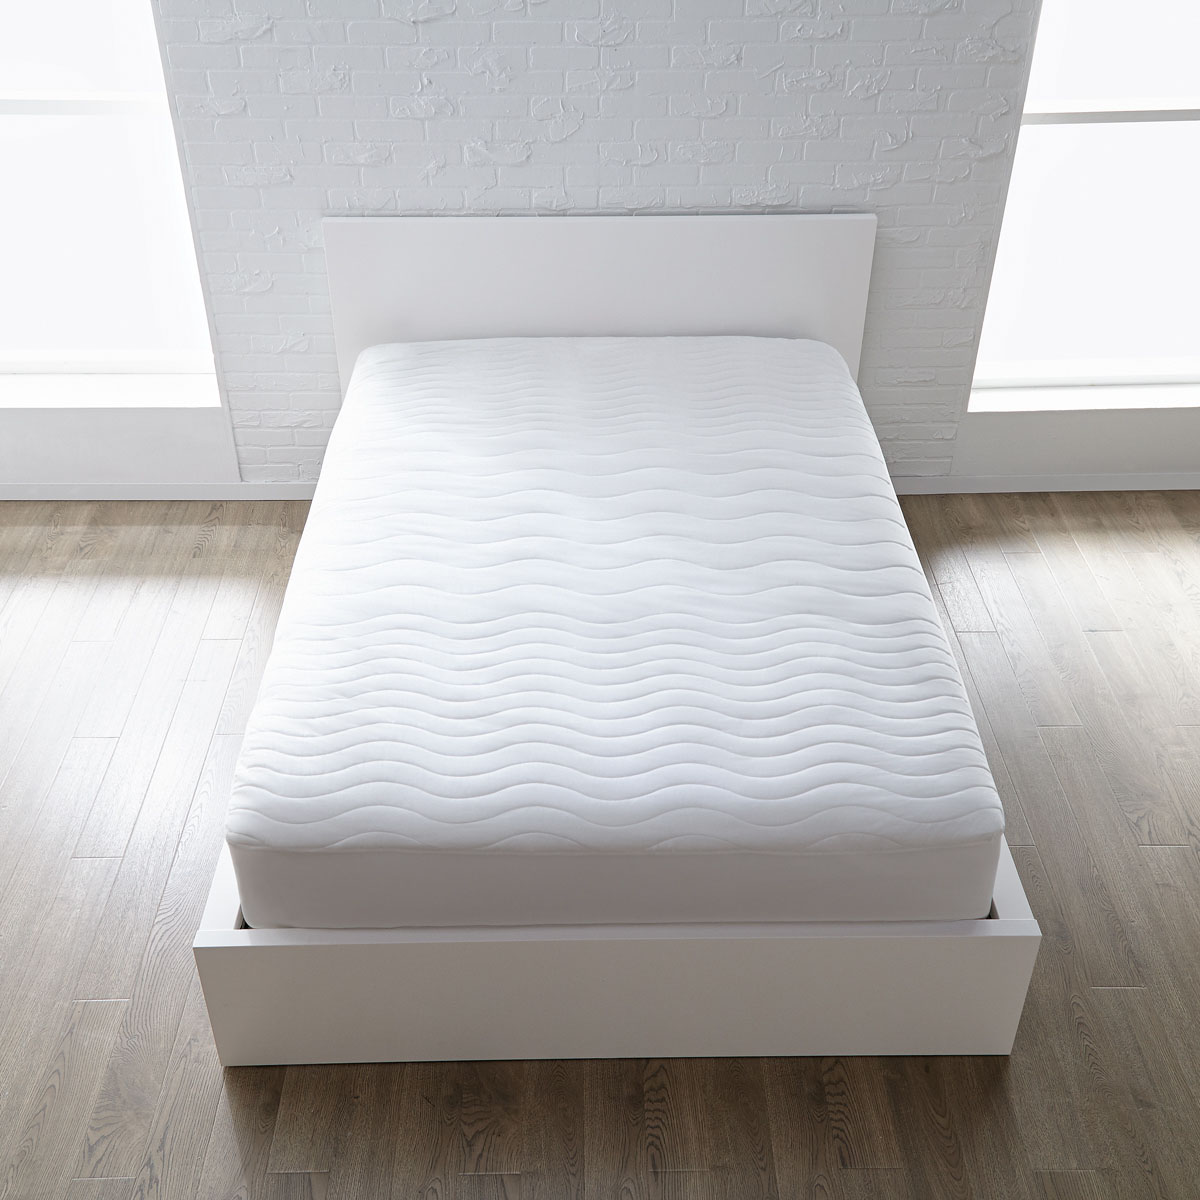 waterproof pad comfort quiet ip com mattress walmart